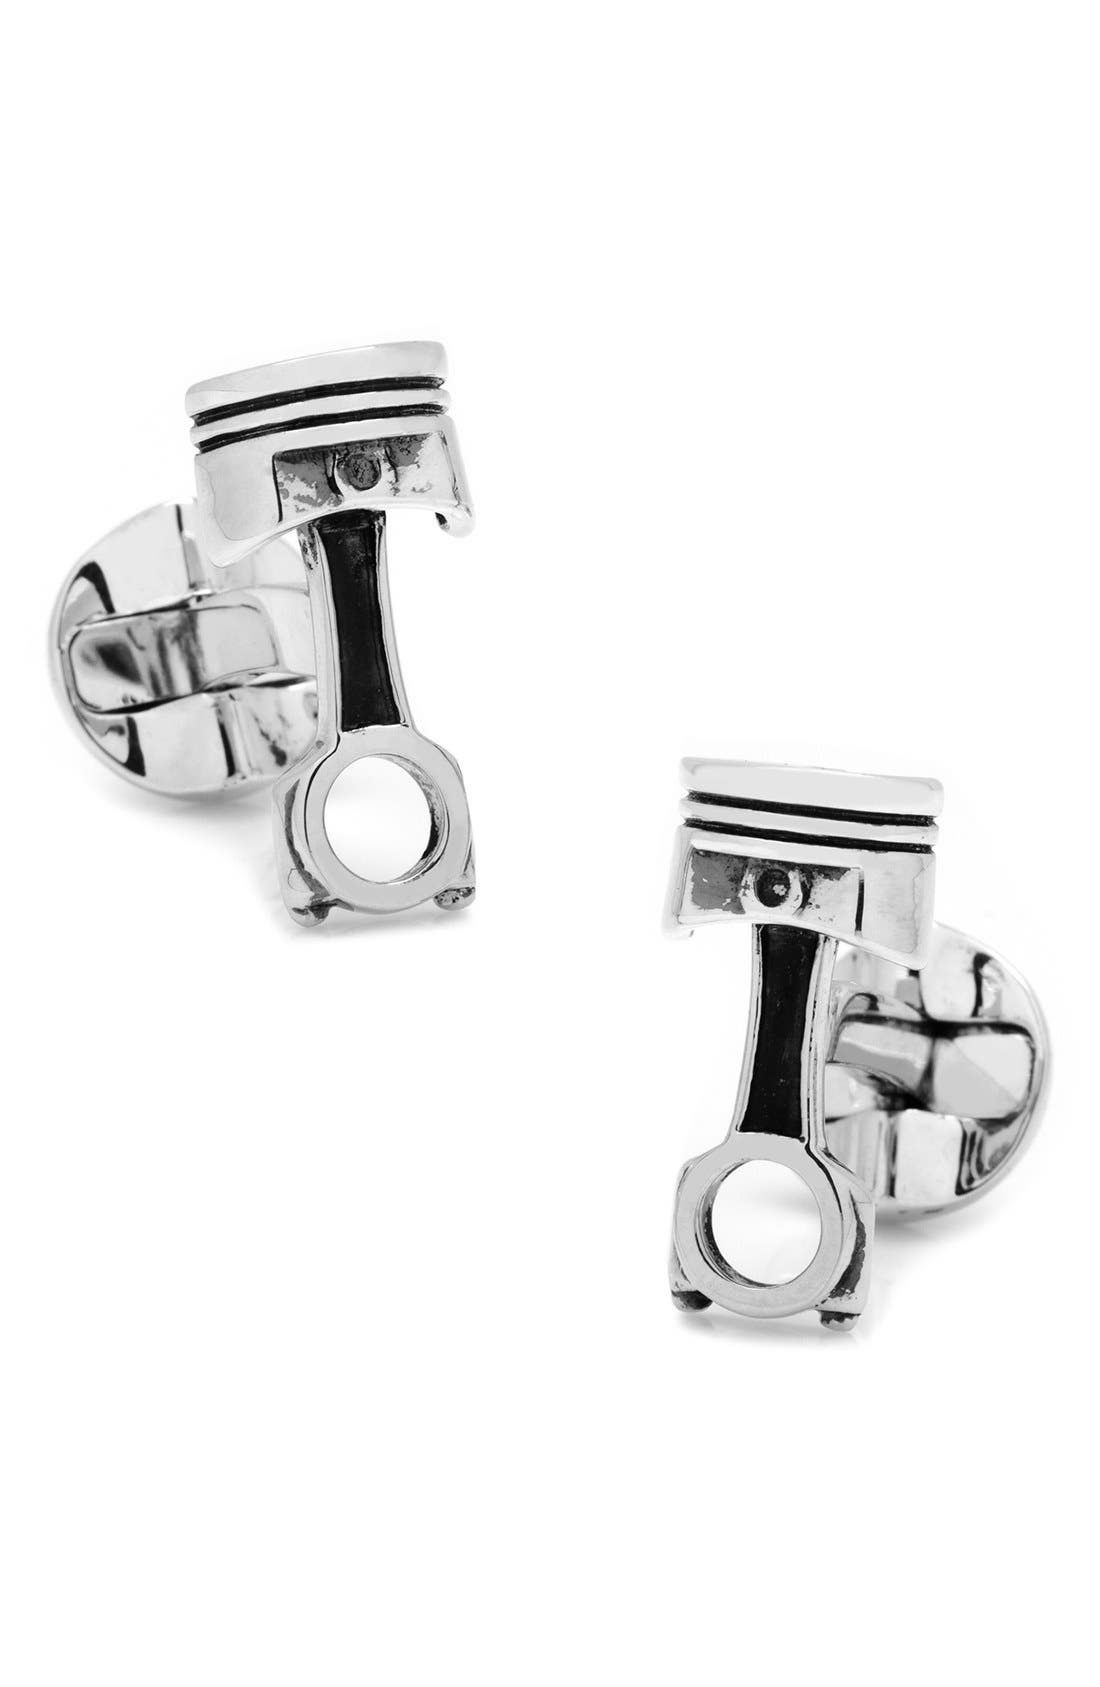 Alternate Image 1 Selected - Ox and Bull Trading Co. Piston Cuff Links